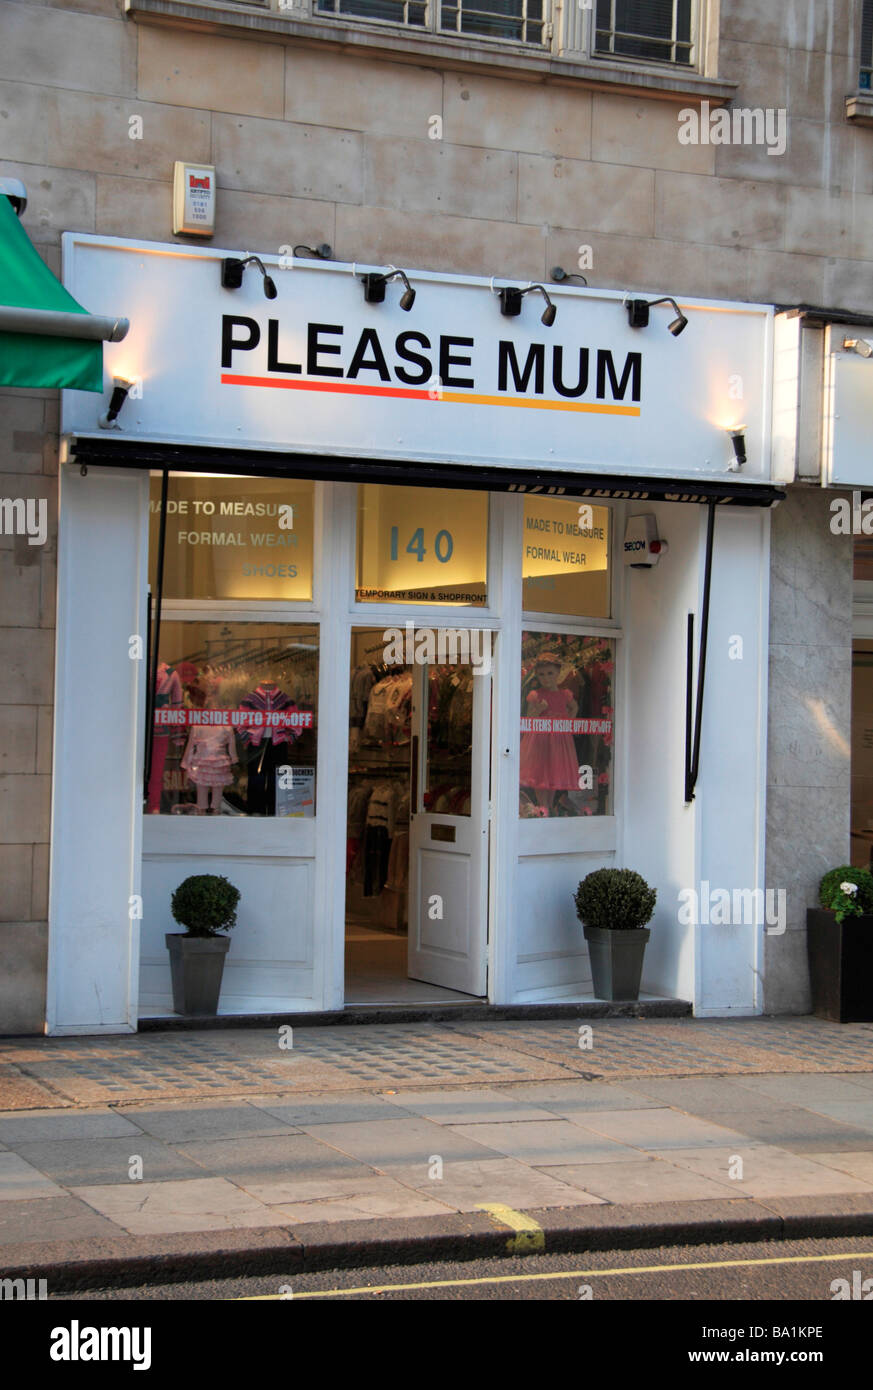 the shop front of the please mum childrens fashion and clothing store BA1KPE the shop front of the 'please mum' children's fashion and clothing,Childrens Clothes Retailers Uk